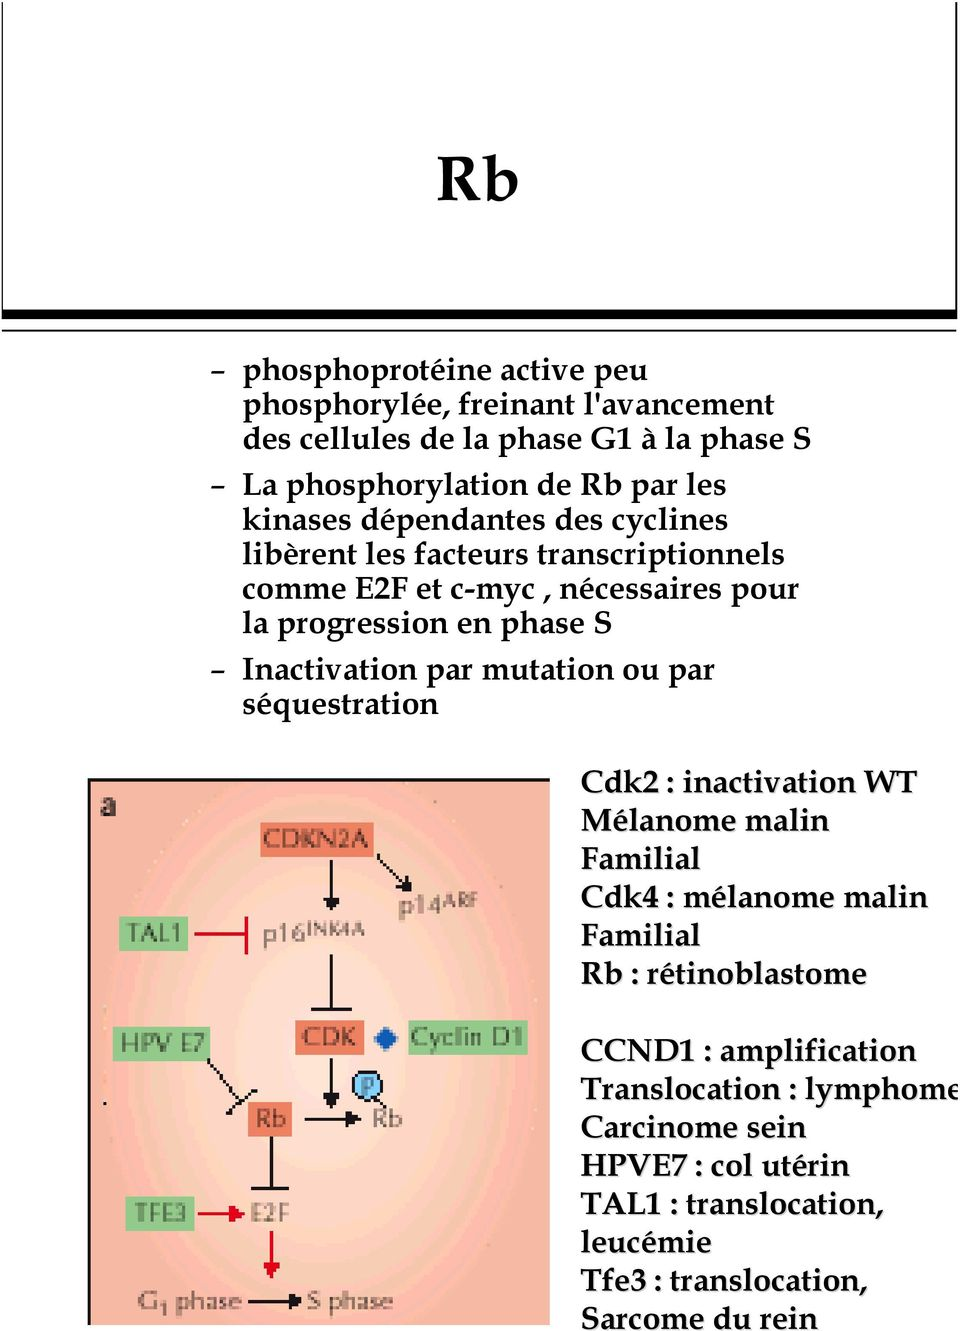 Inactivation par mutation ou par séquestration Cdk2 : inactivation WT Mélanome malin Familial Cdk4 : mélanome m malin Familial Rb :